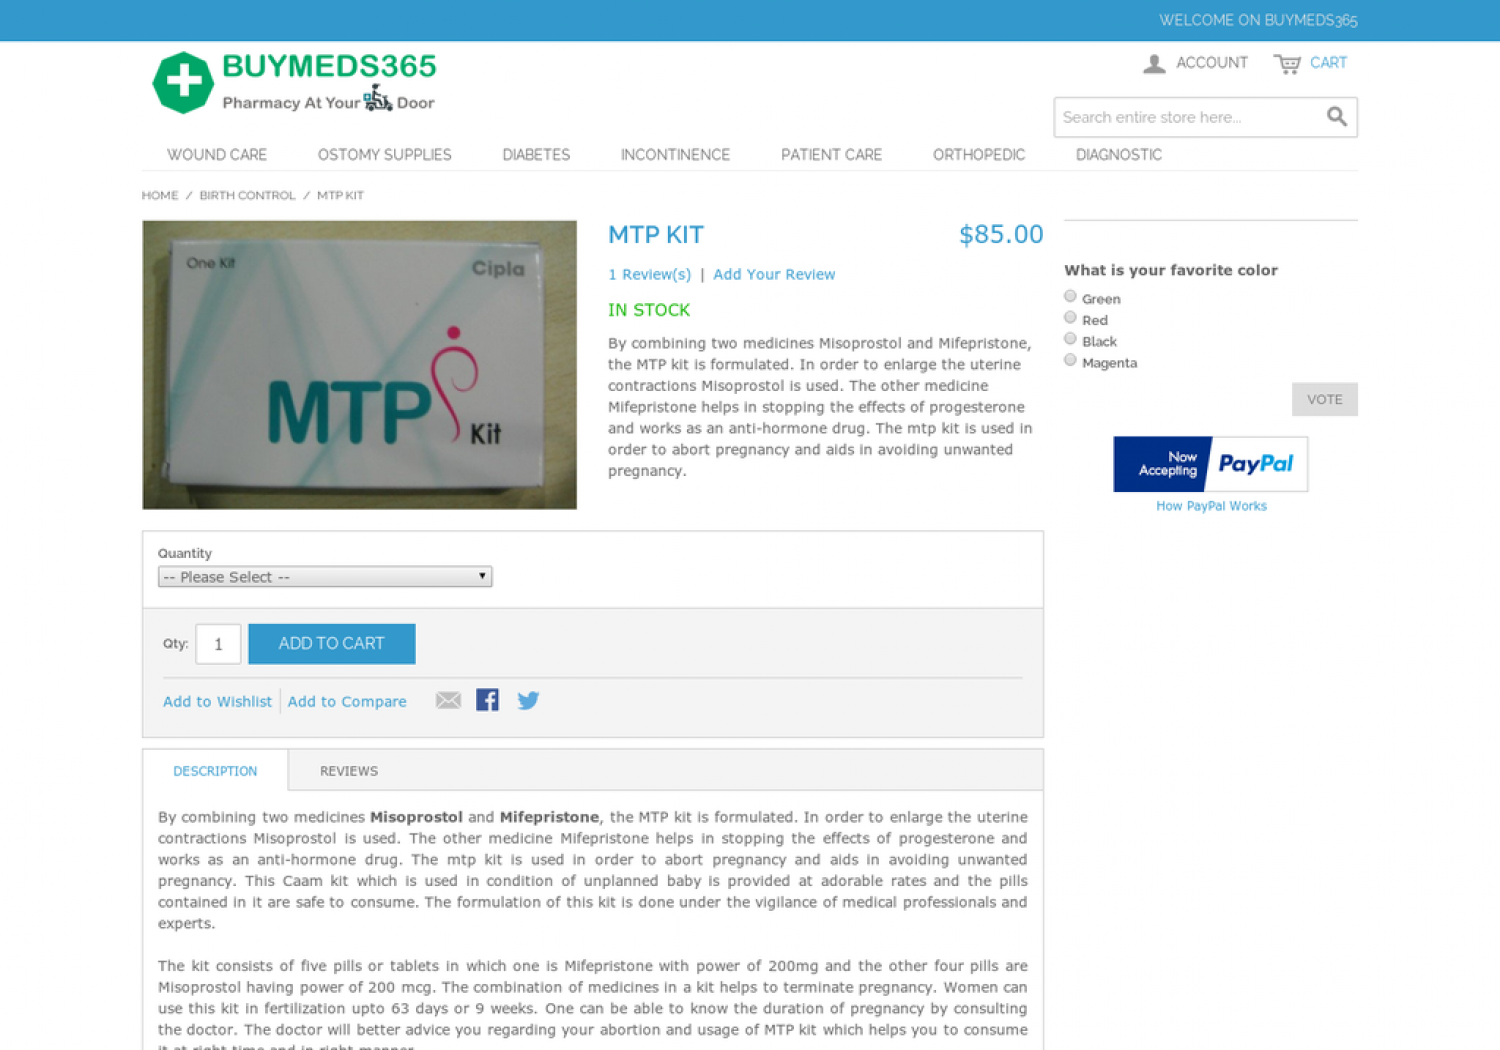 Buy MTP Kit Online USA Infographic